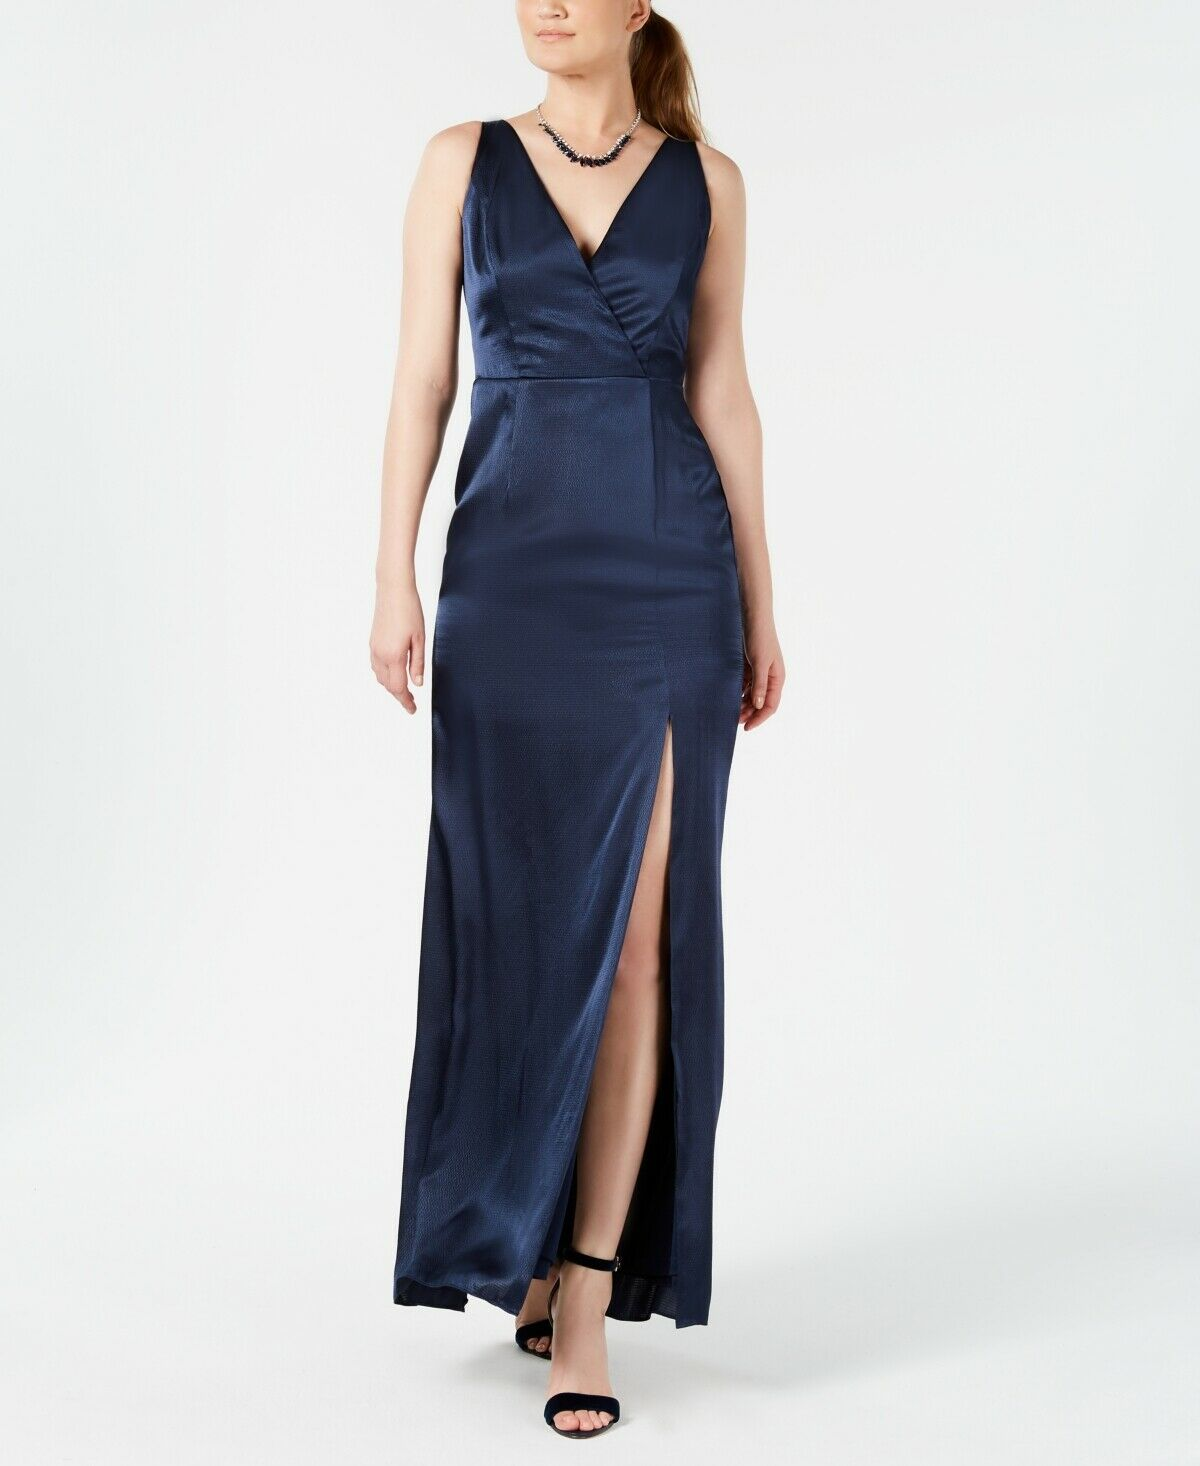 NEW  ADRIANNA PAPELL damen Blau SATIN SLEEVELESS GOWN FORMAL DRESS Größe 12